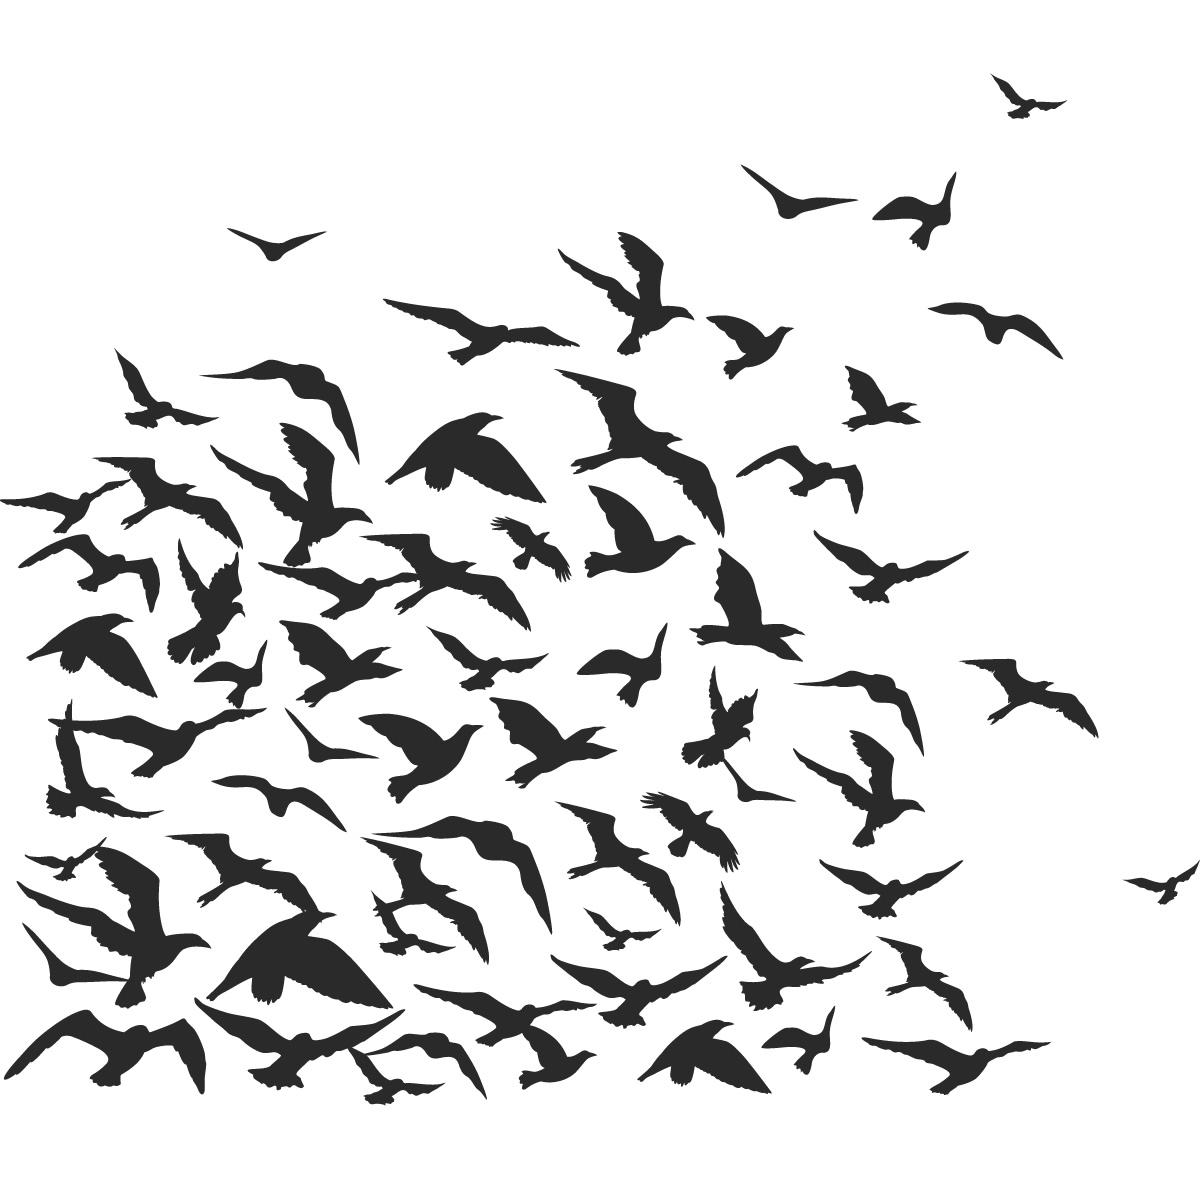 Famous Flock Of Birds Animals Wall Art Decal Wall Stickers Transfers Throughout Flock Of Birds Metal Wall Art (View 4 of 15)